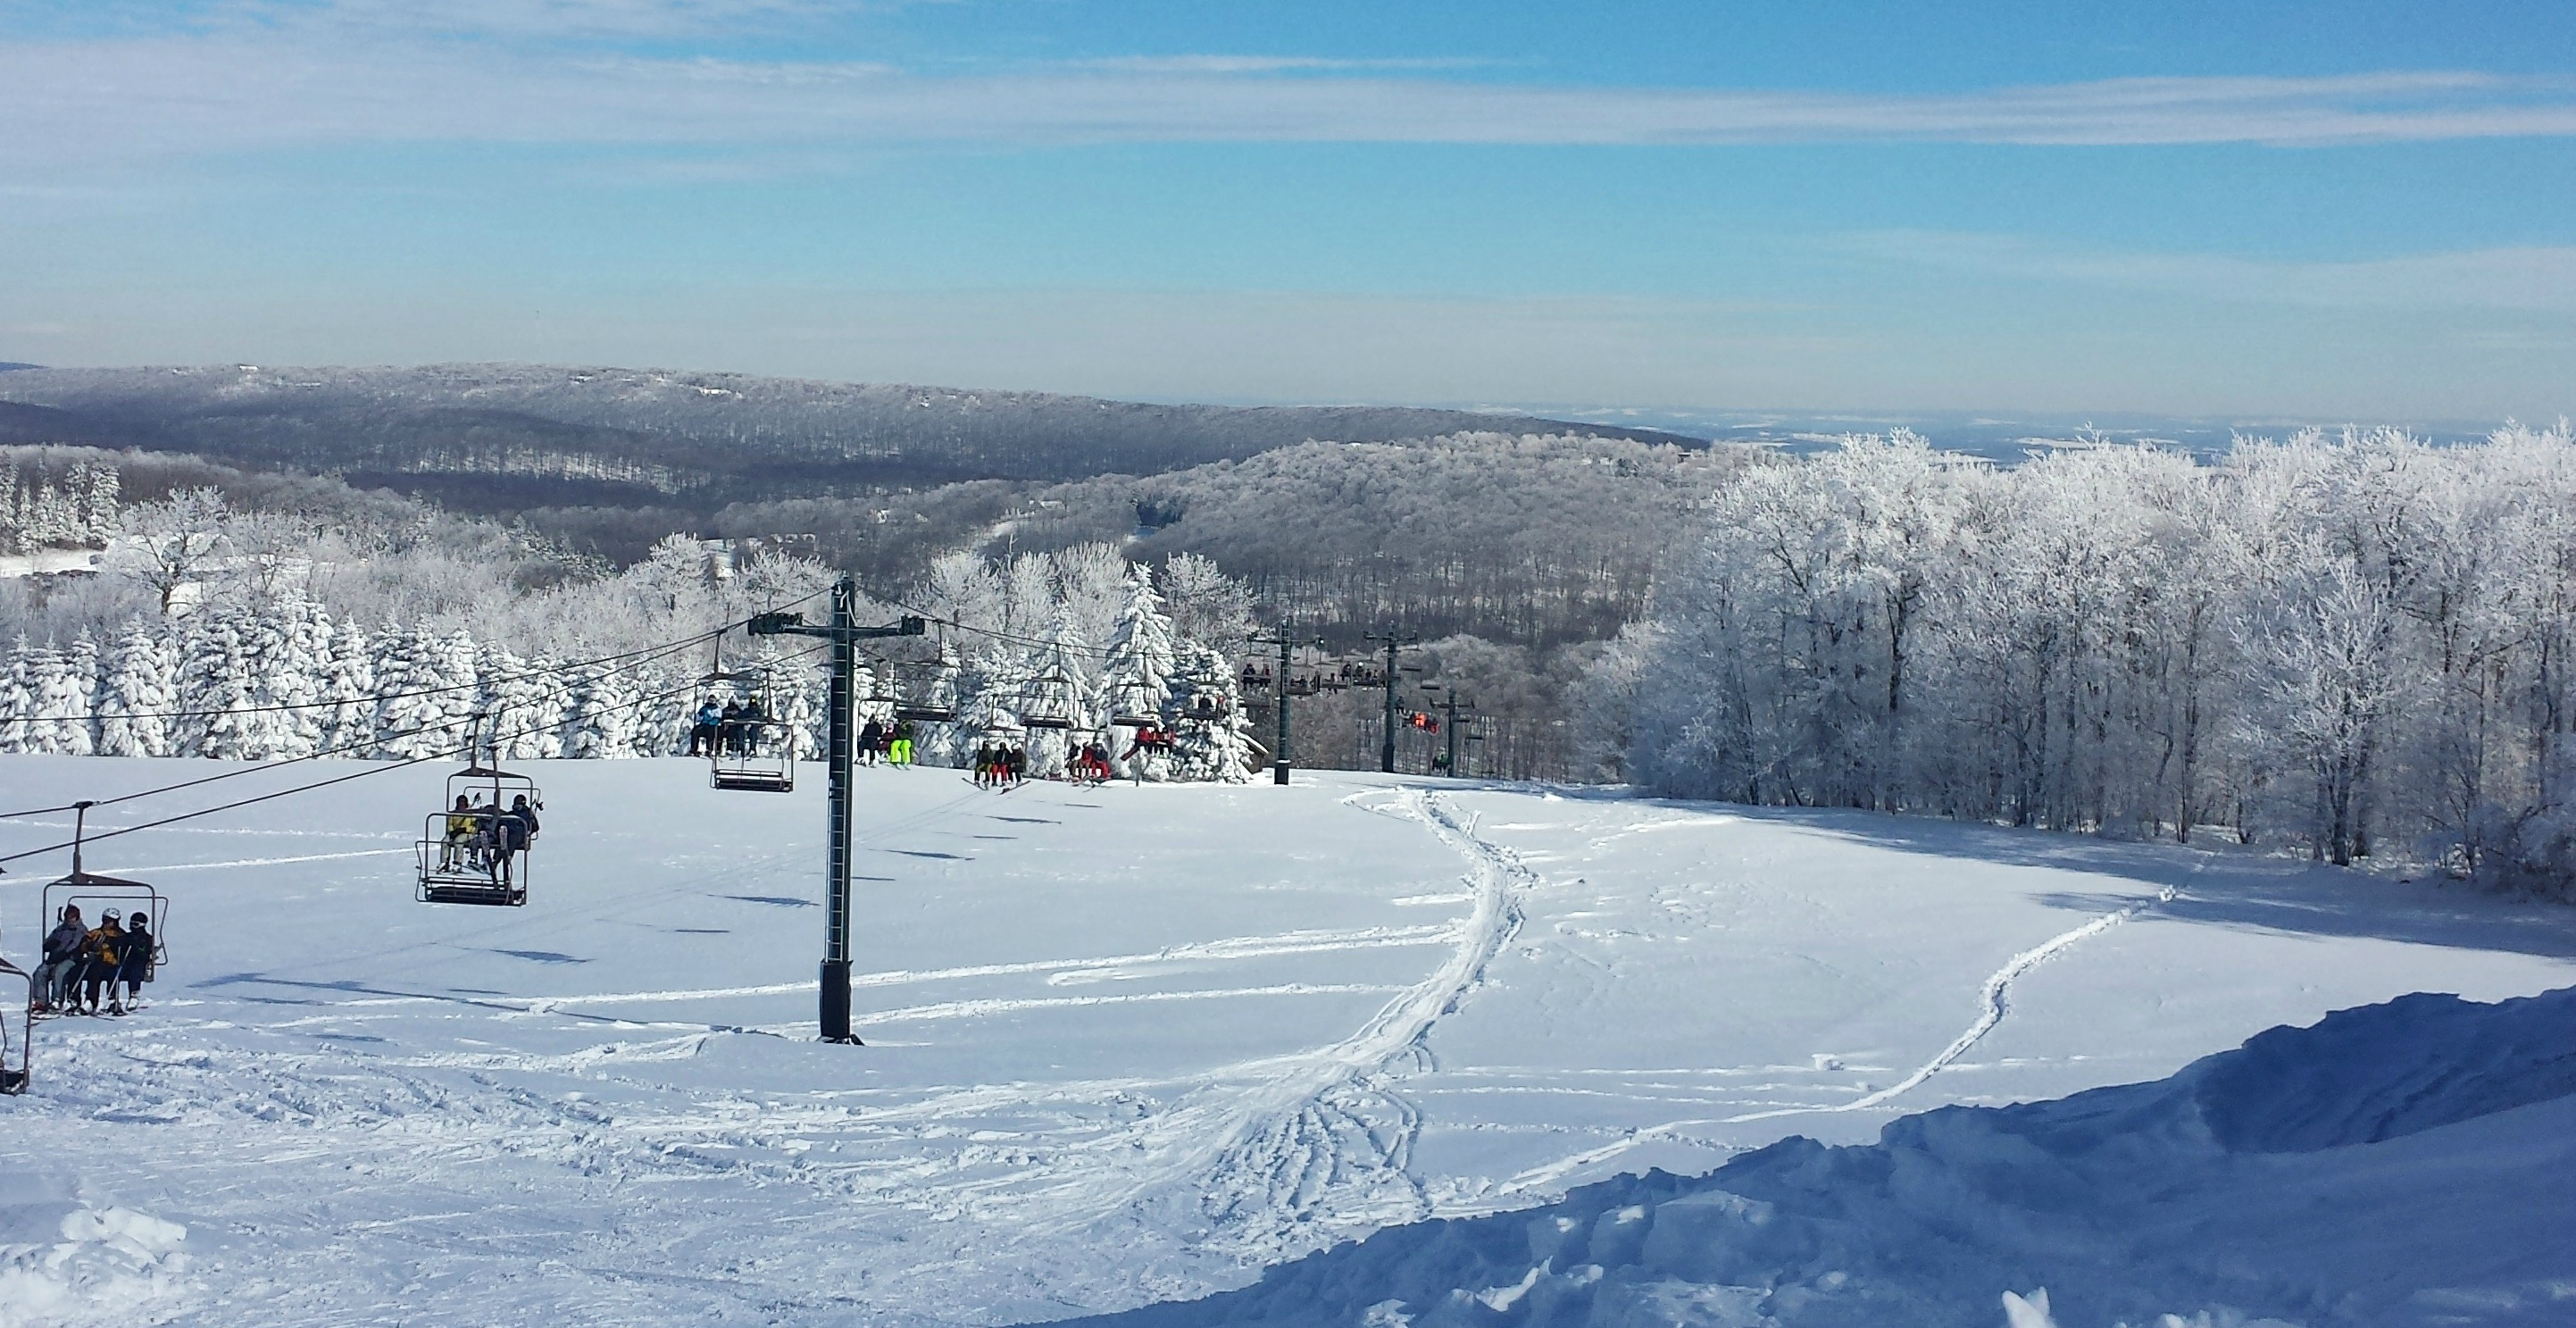 pennsylvania skiing: seven springs mountain resort - lynne petre